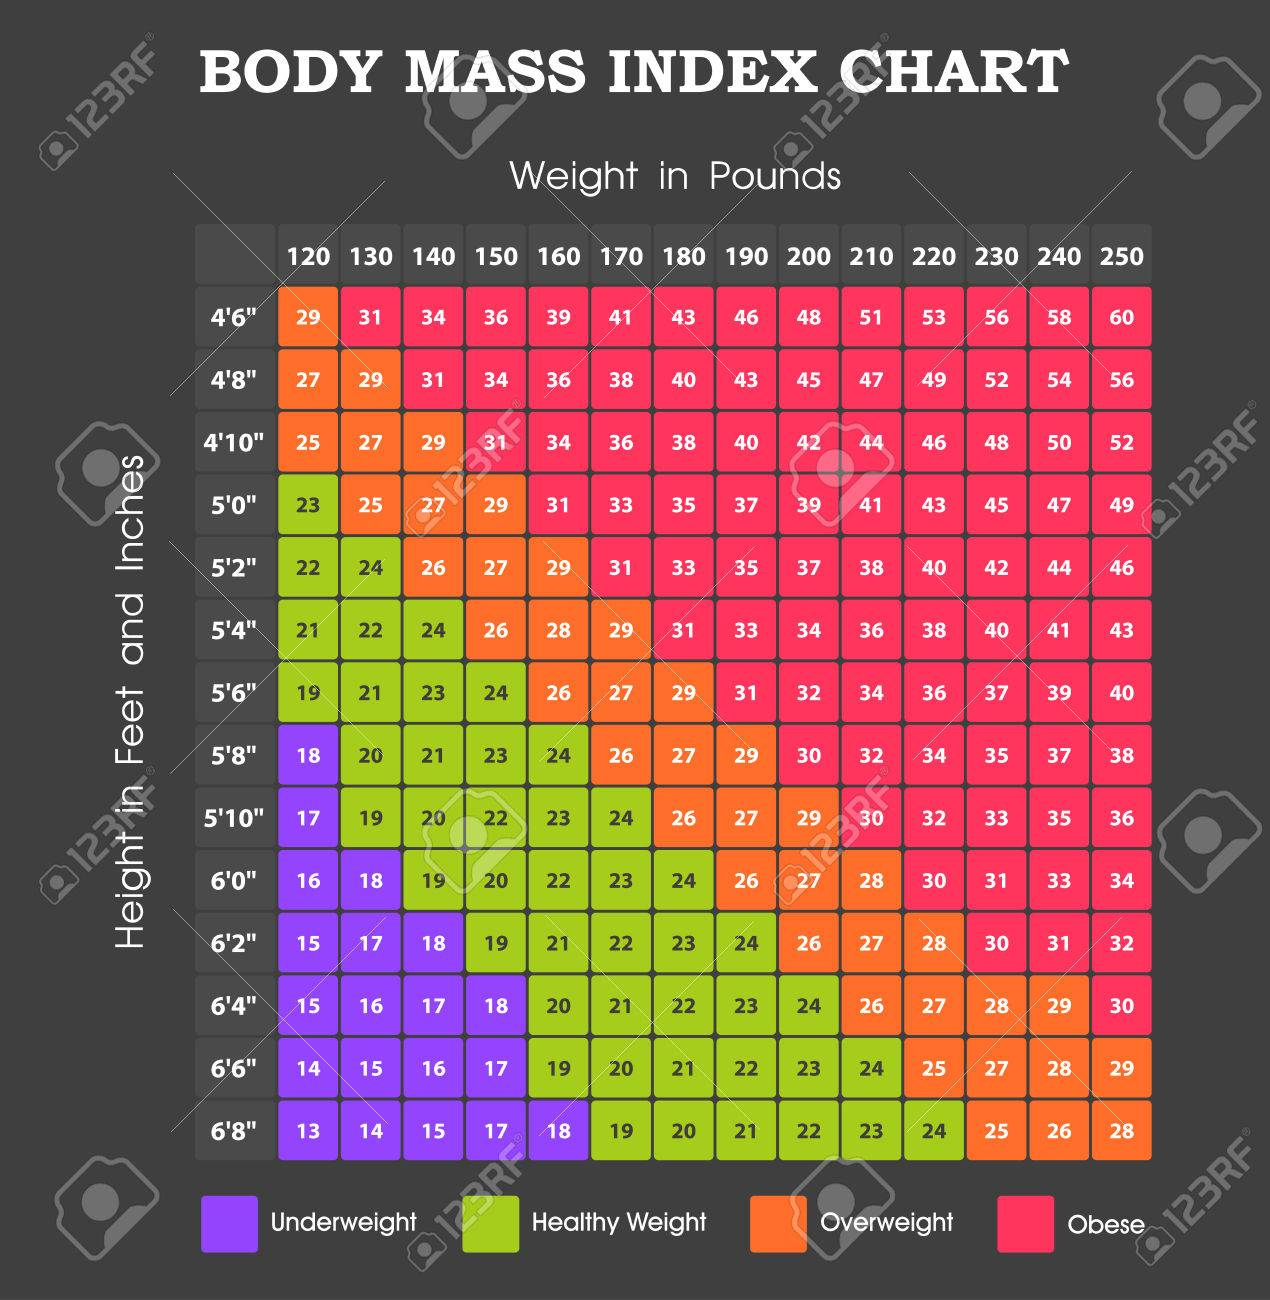 Body mass index chart height an weight infographic royalty free body mass index chart height an weight infographic stock vector 57528359 geenschuldenfo Gallery